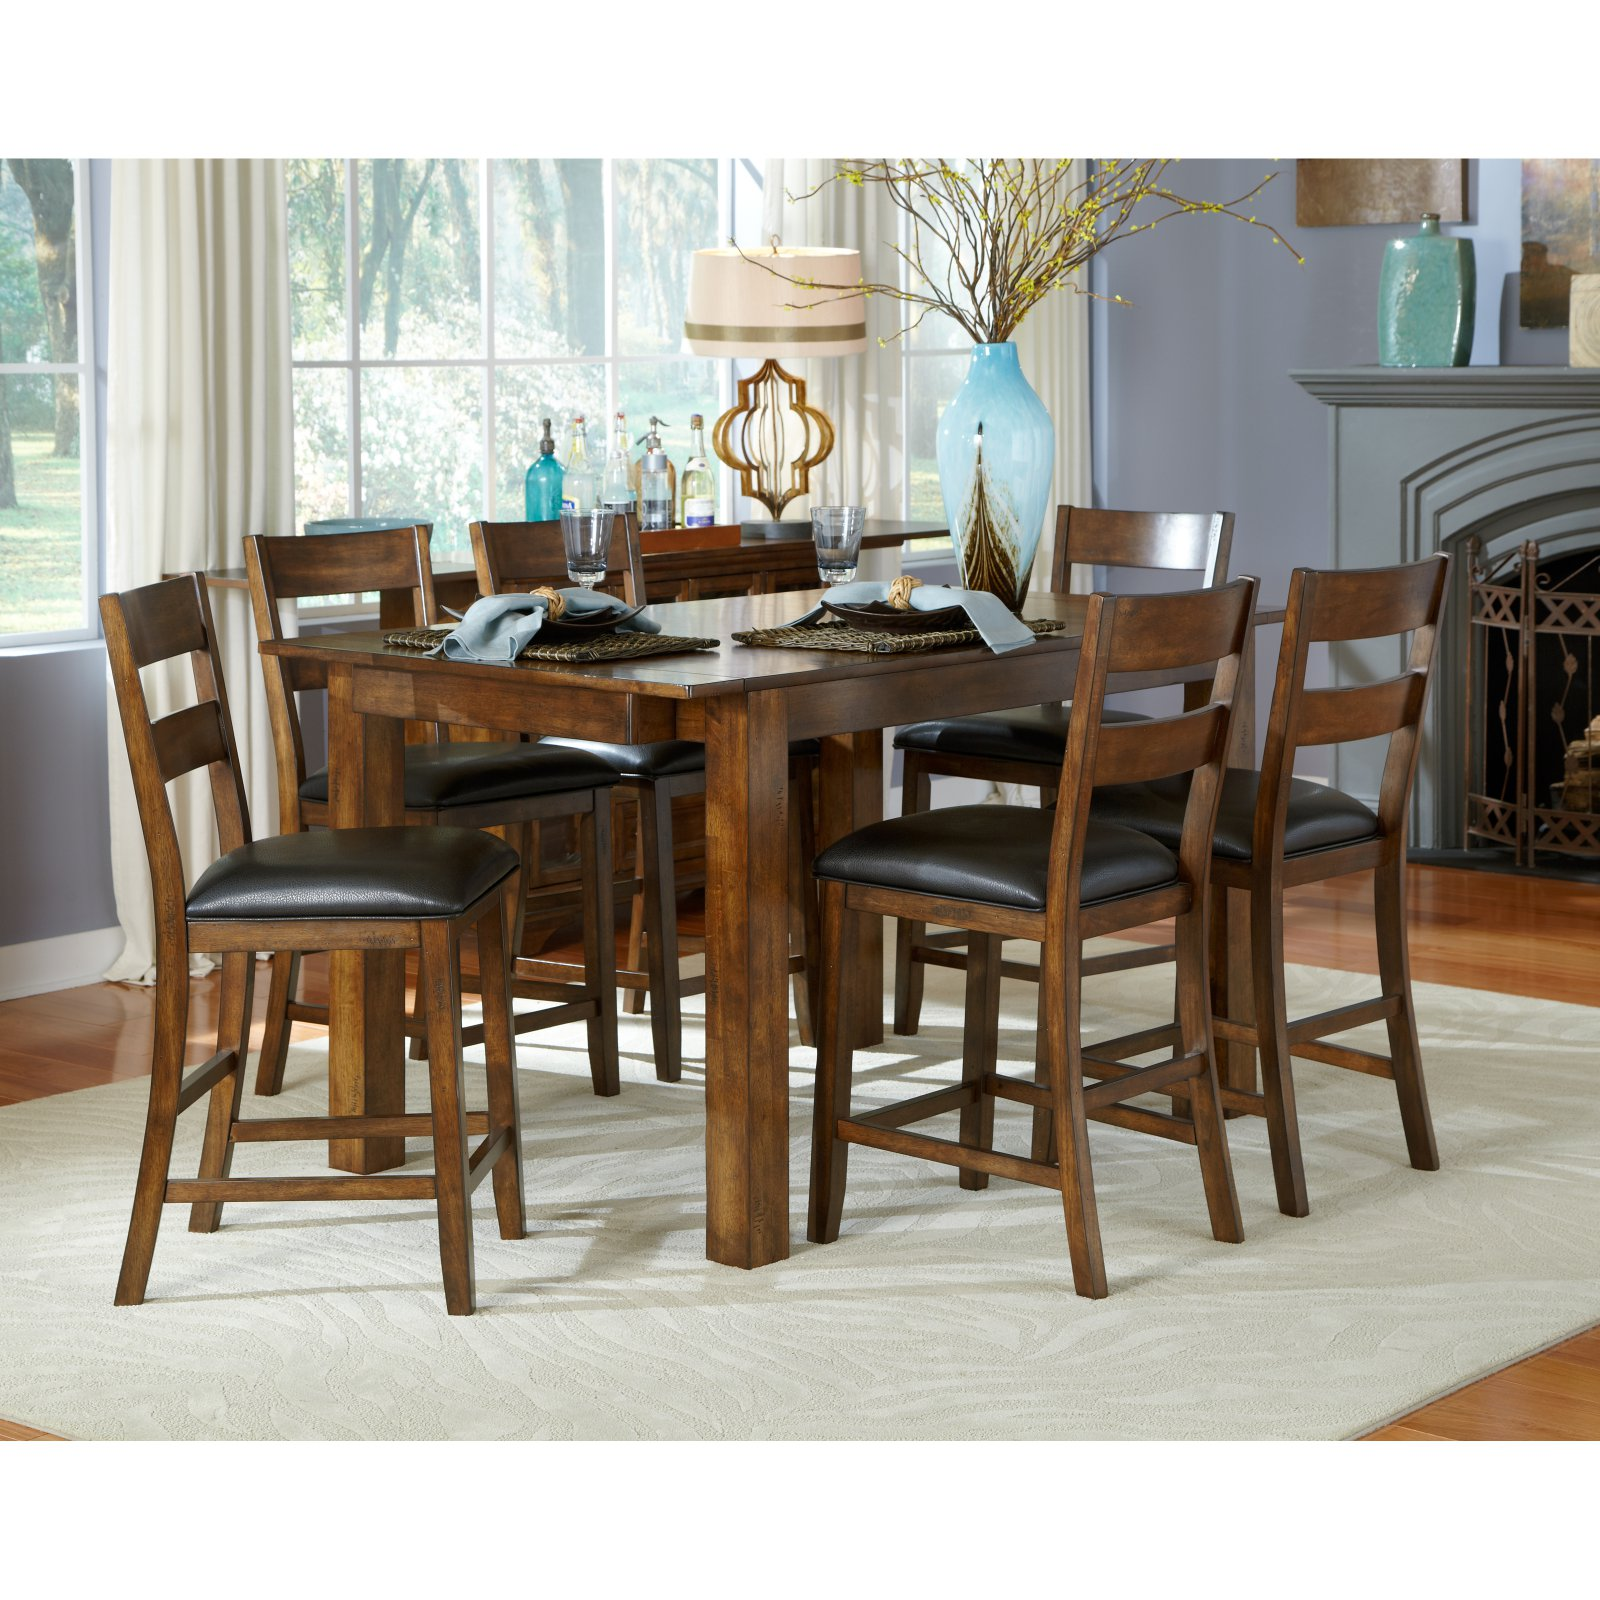 A-America Mariposa Gathering Counter Height Dining Table - Rustic Whiskey